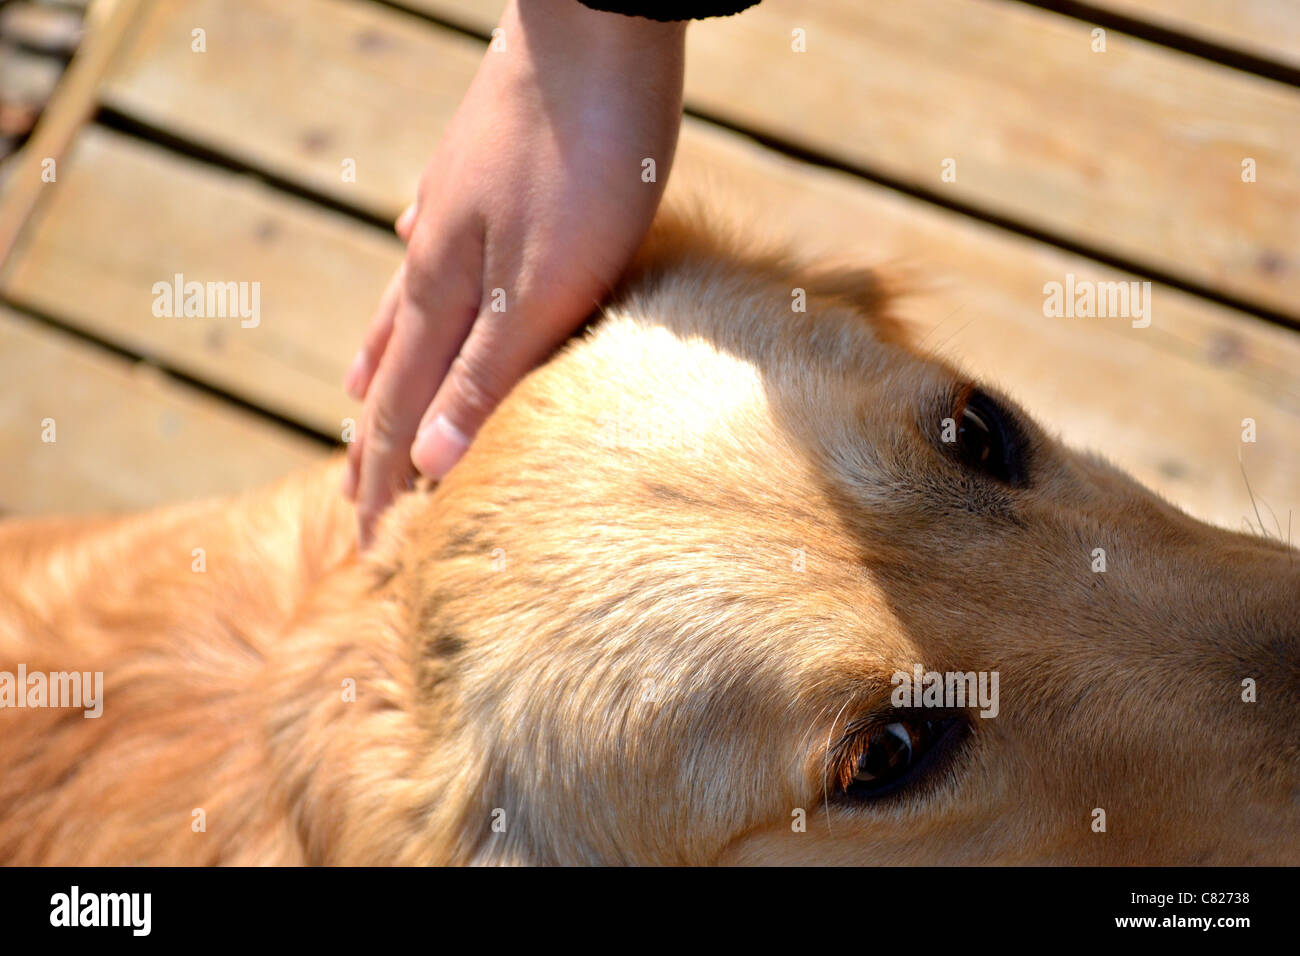 A cute golden retriever dog and it's owner bonding - Stock Image